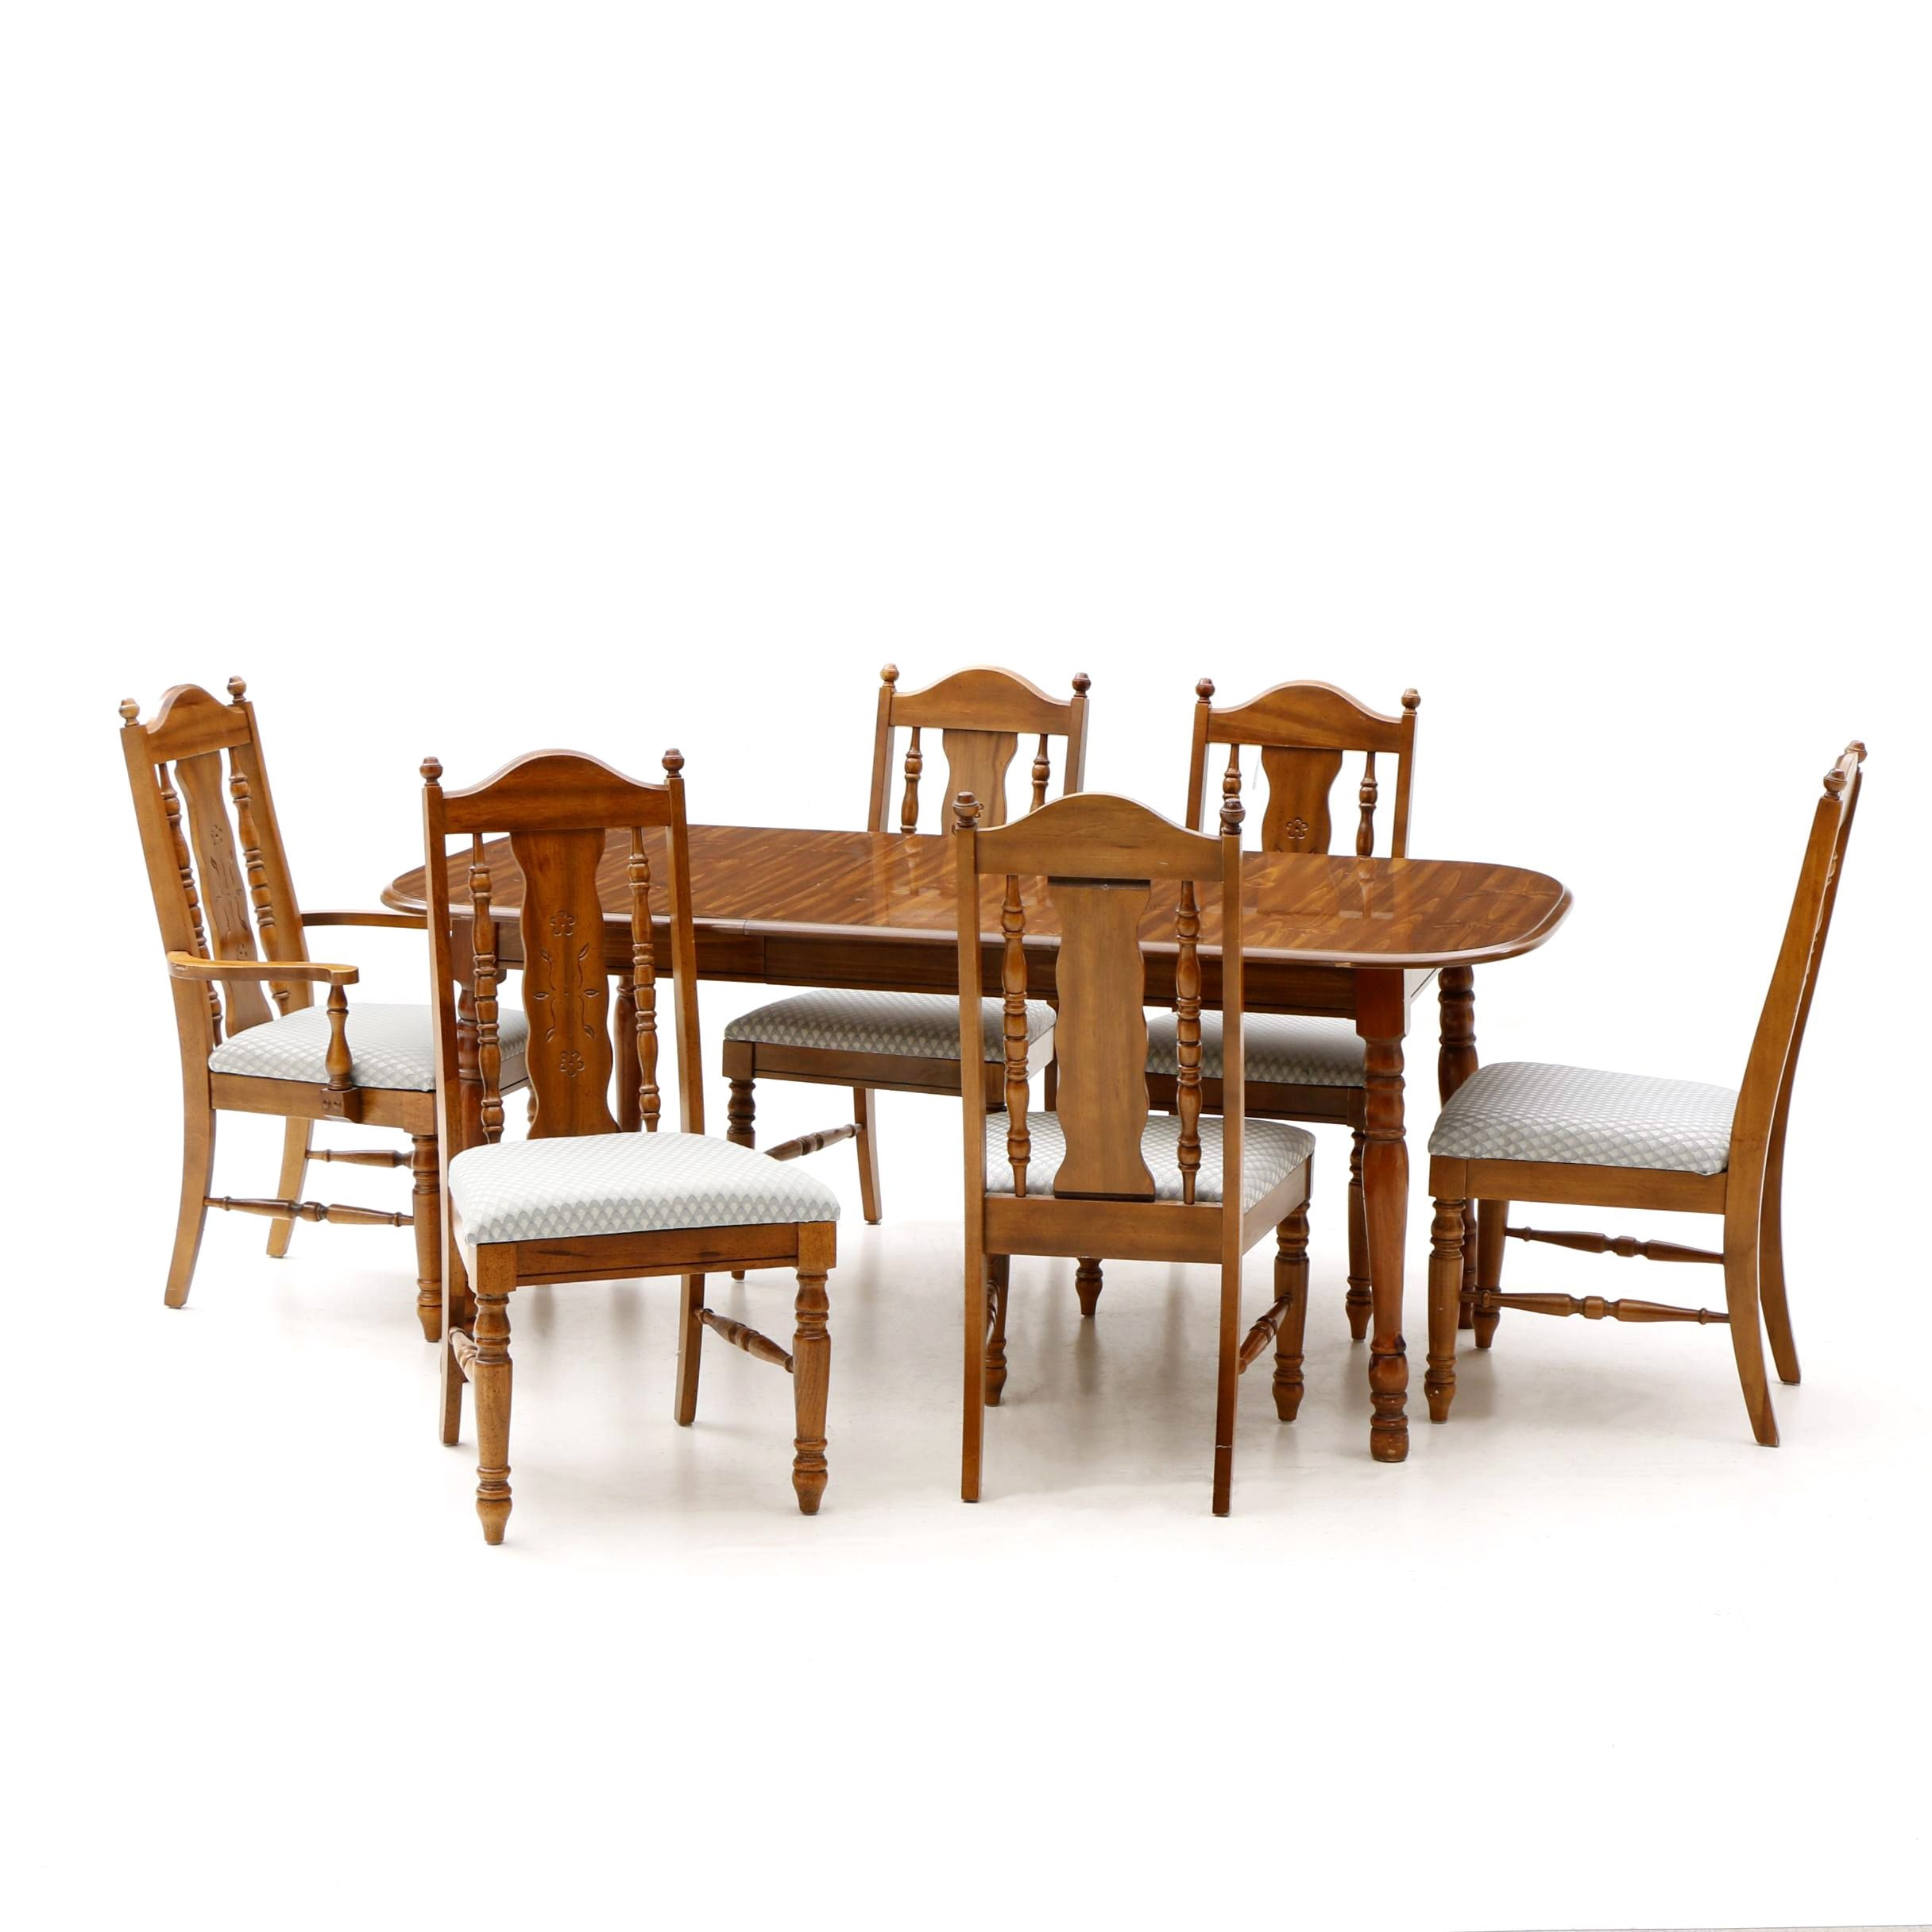 Dining Table With Six Chairs in Fruitwood by Lenoir House